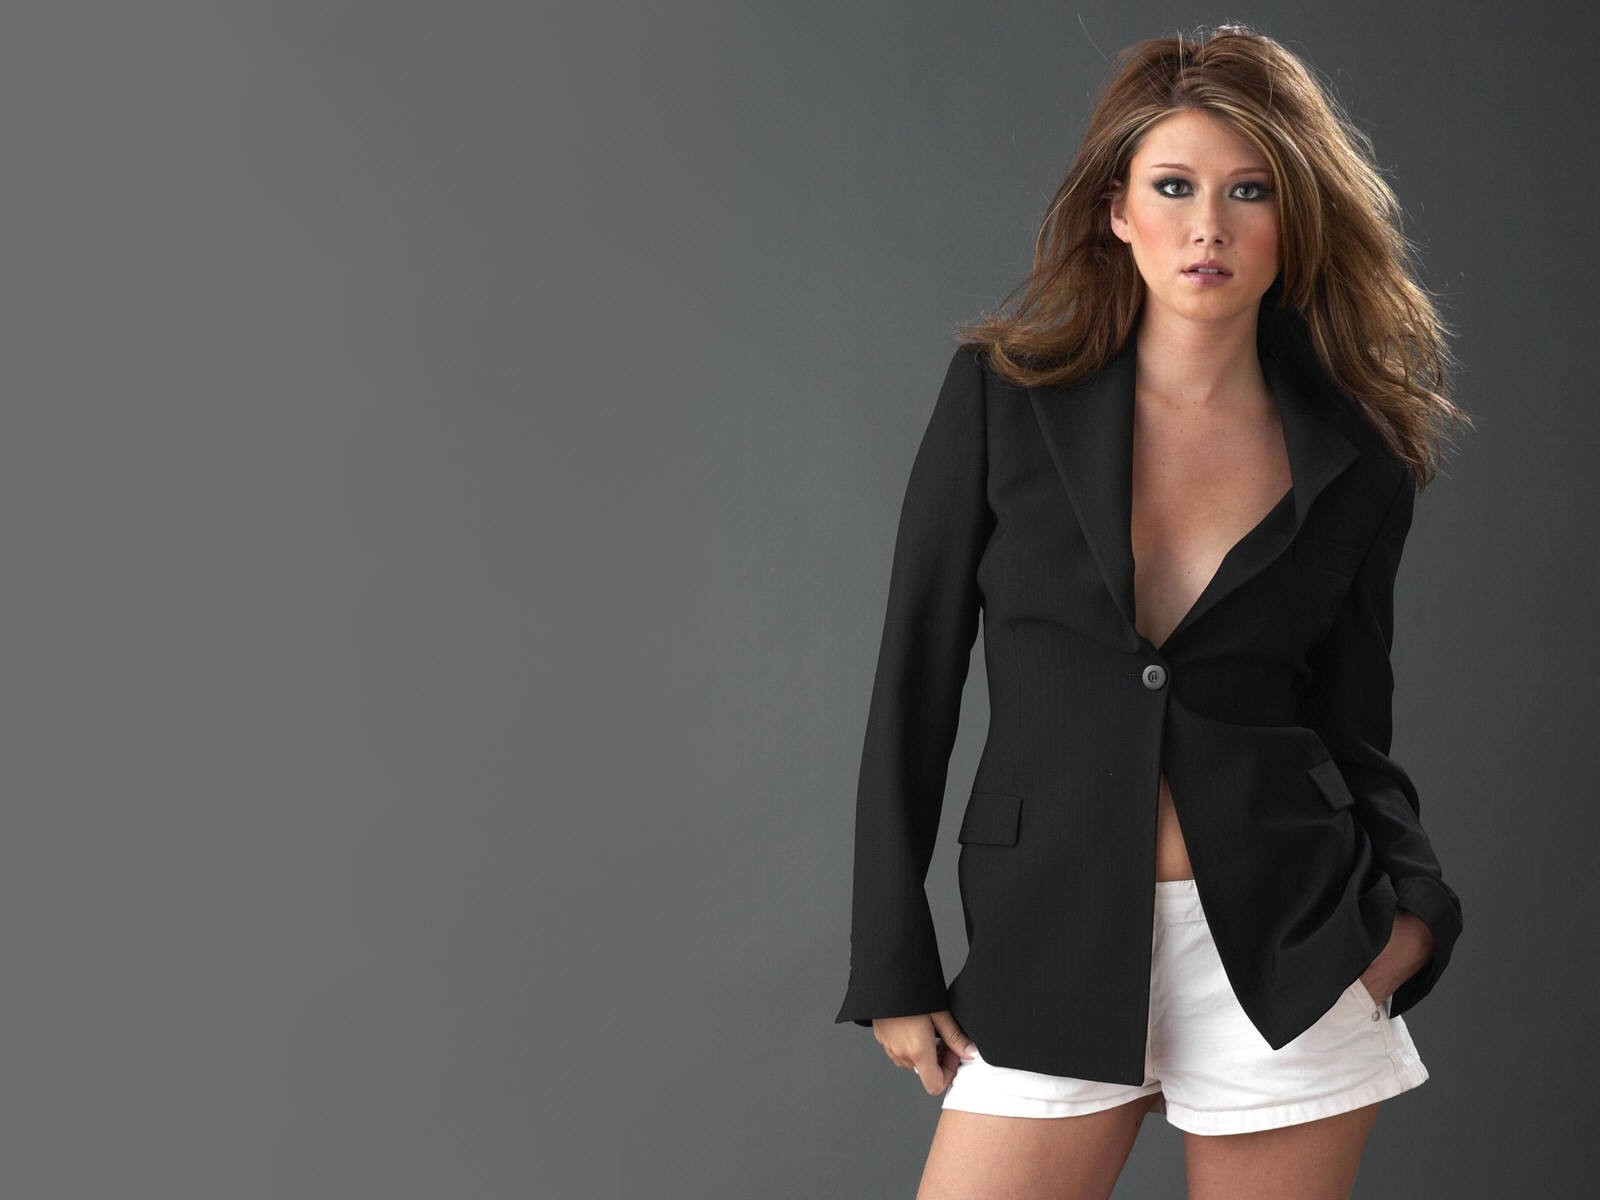 gray background brunettes woman HD Wallpaper